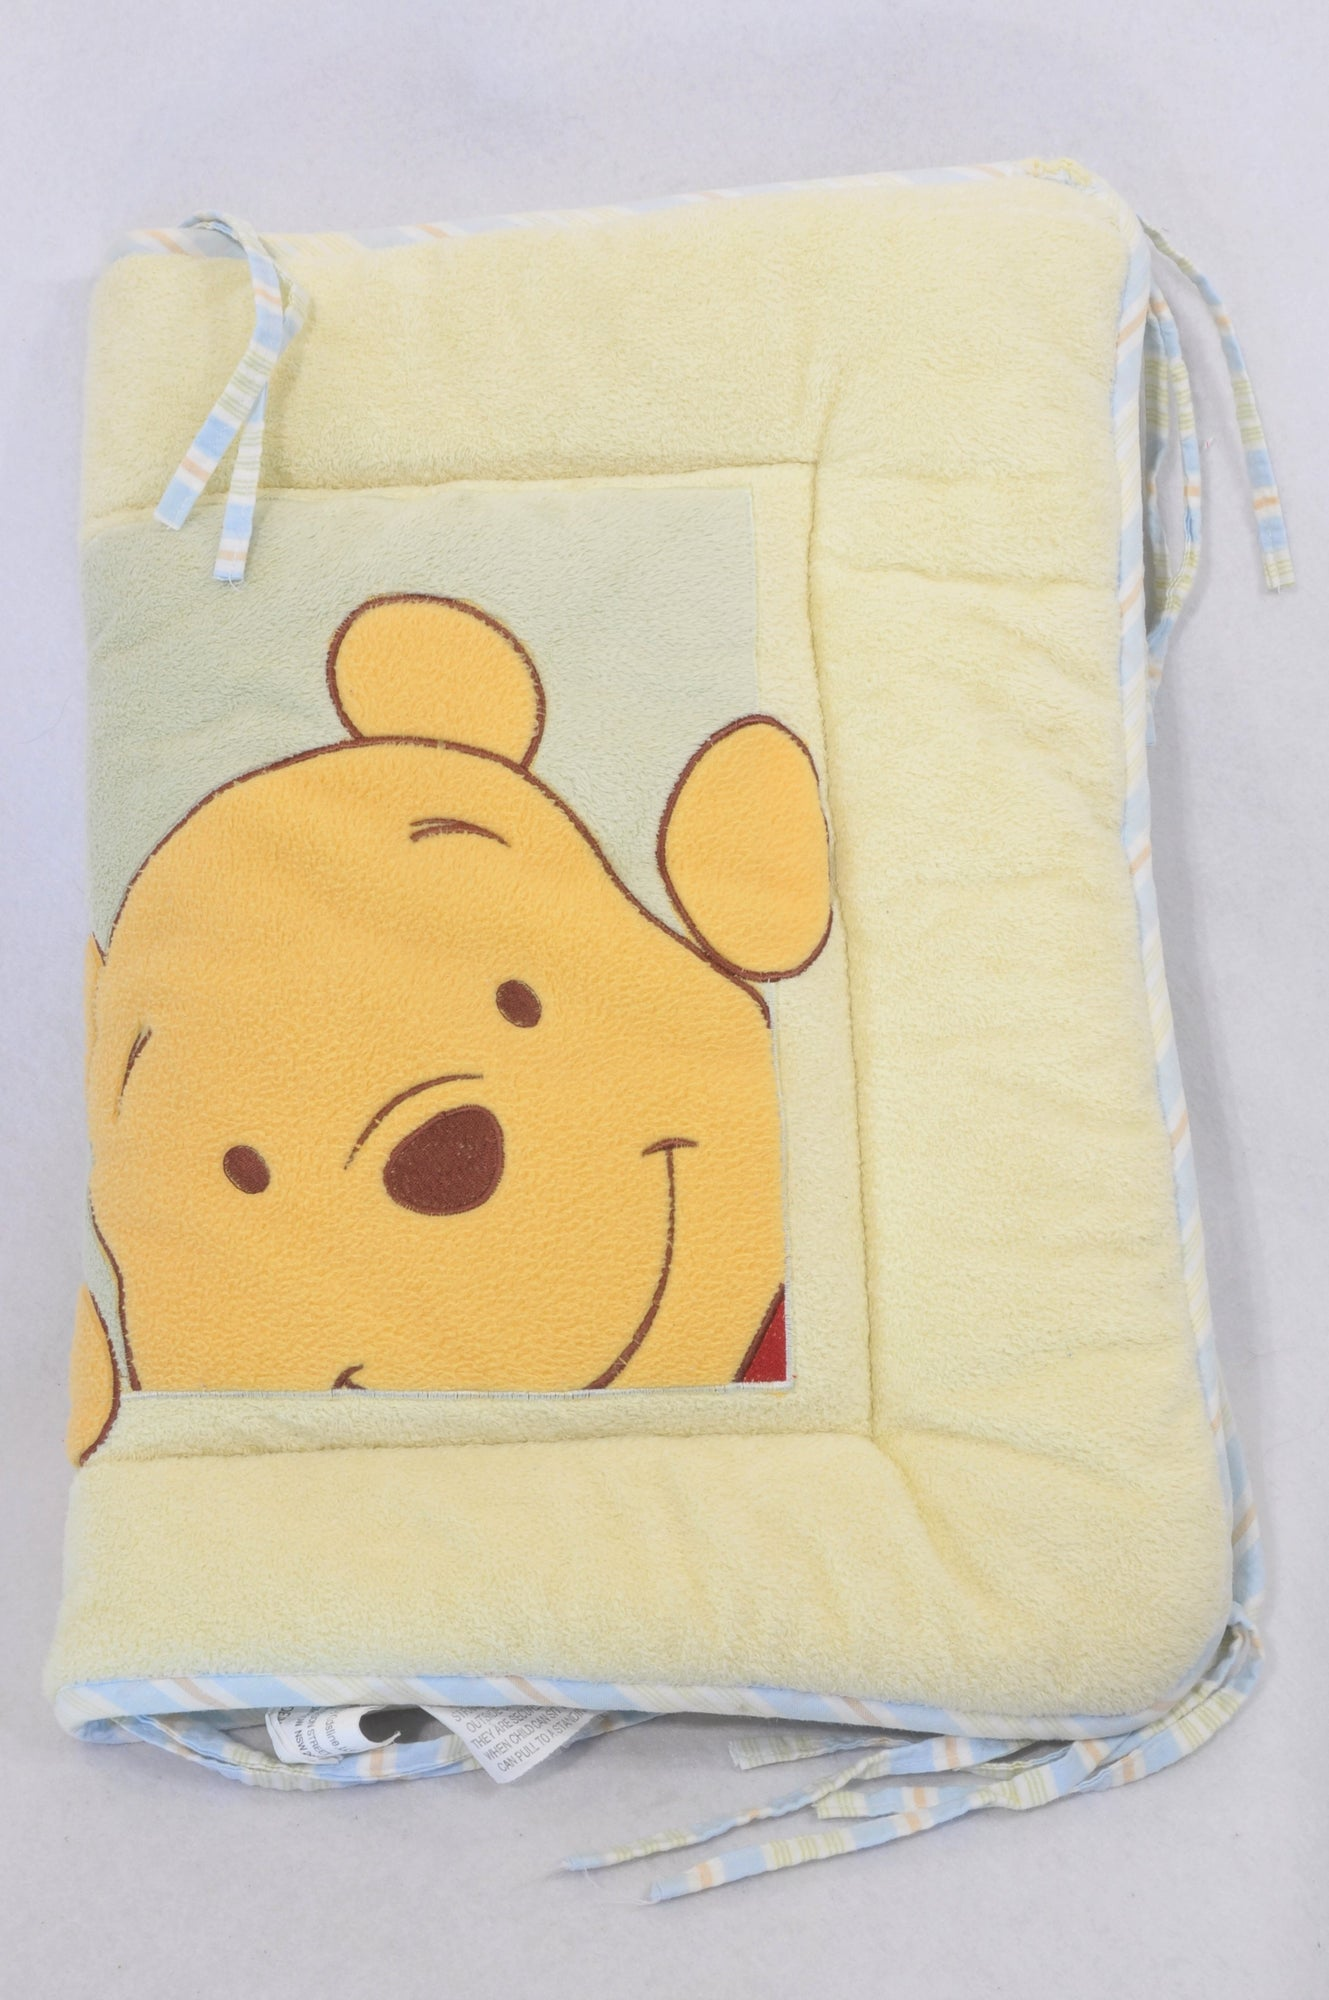 Unbranded Green & Yellow Winnie The Pooh Bedding Set Unisex N-B to 1 year